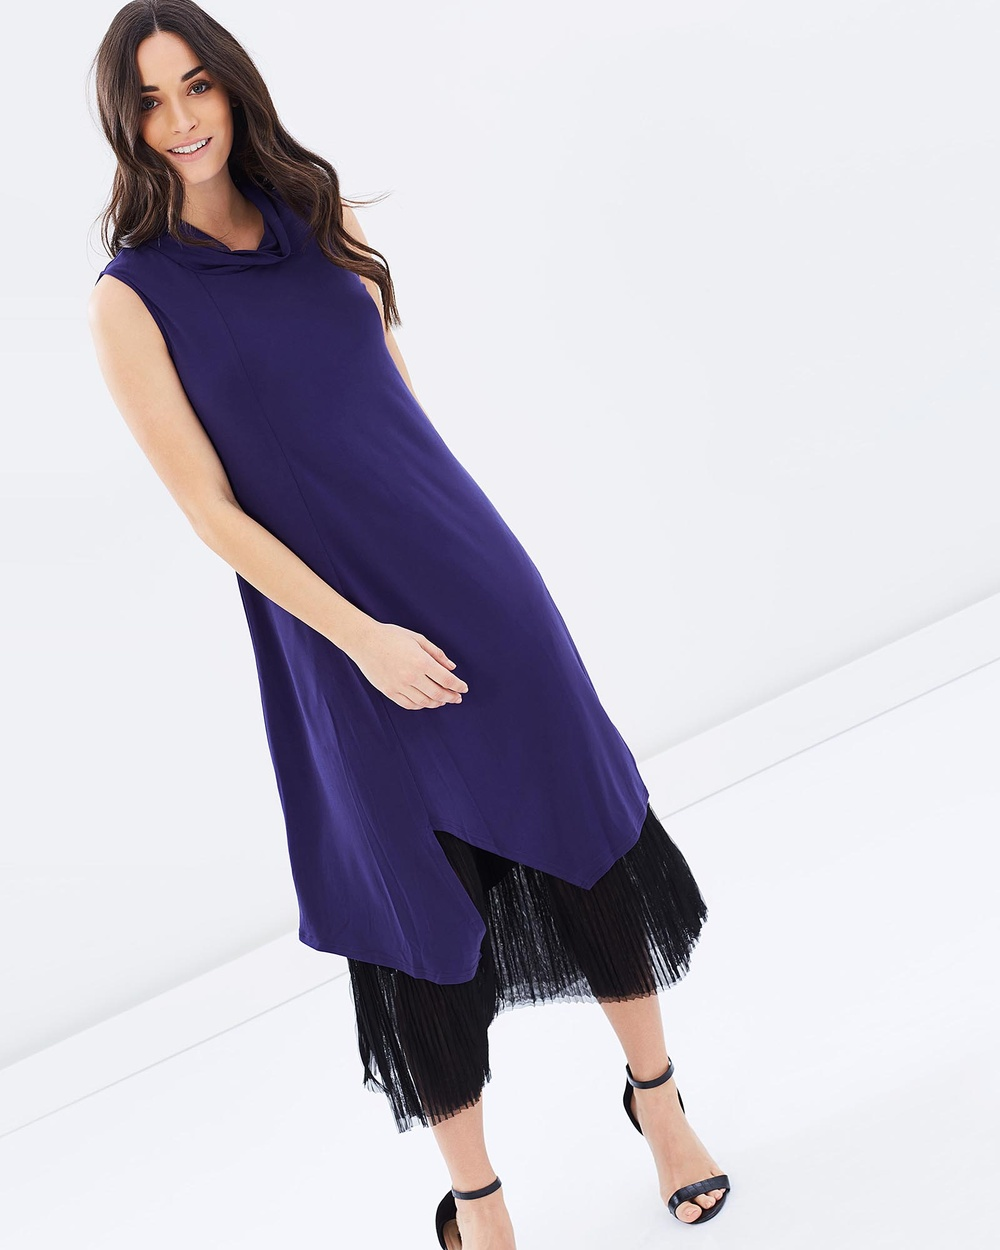 Faye Black Label Grandeur Layered Pleat Dress Dresses Regal Navy Grandeur Layered Pleat Dress